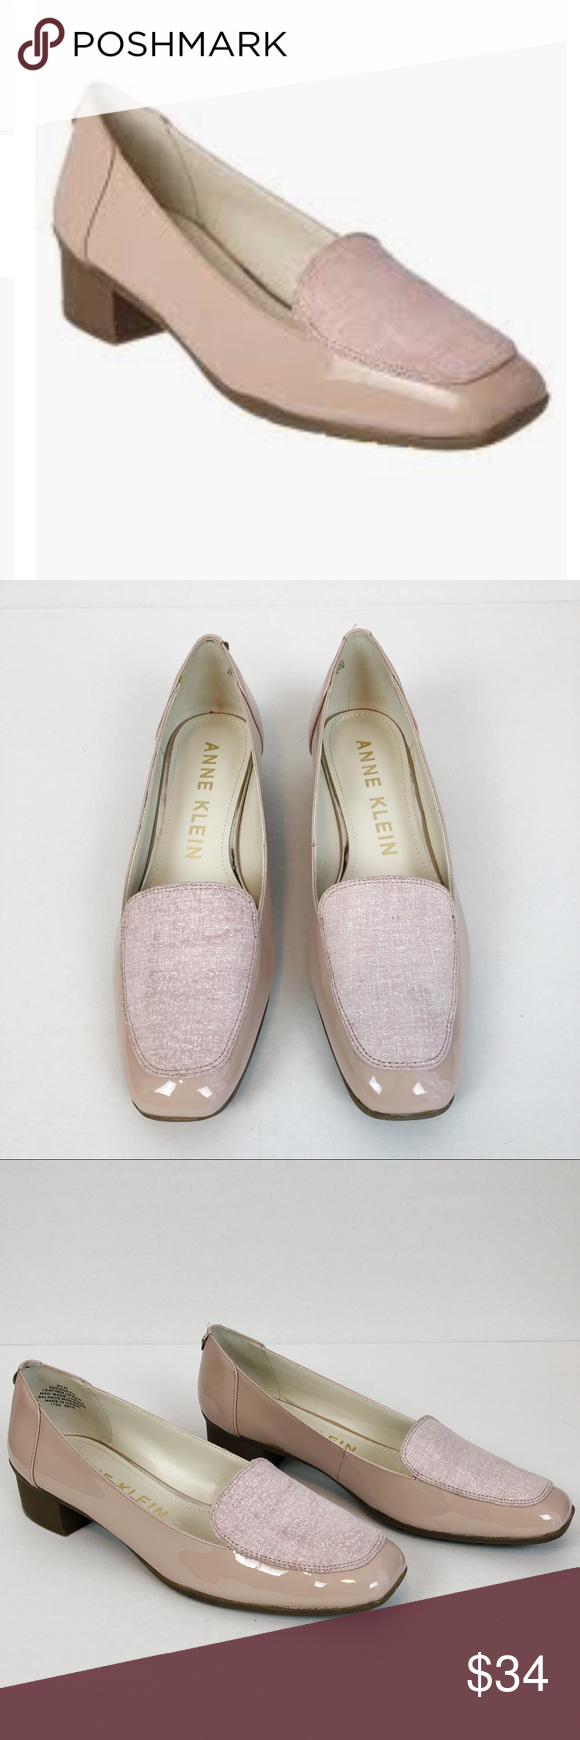 4f4121280e3 Anne Klein Daneen Patent Leather Loafers Go for a casual tailored look with  the Daneen loafer